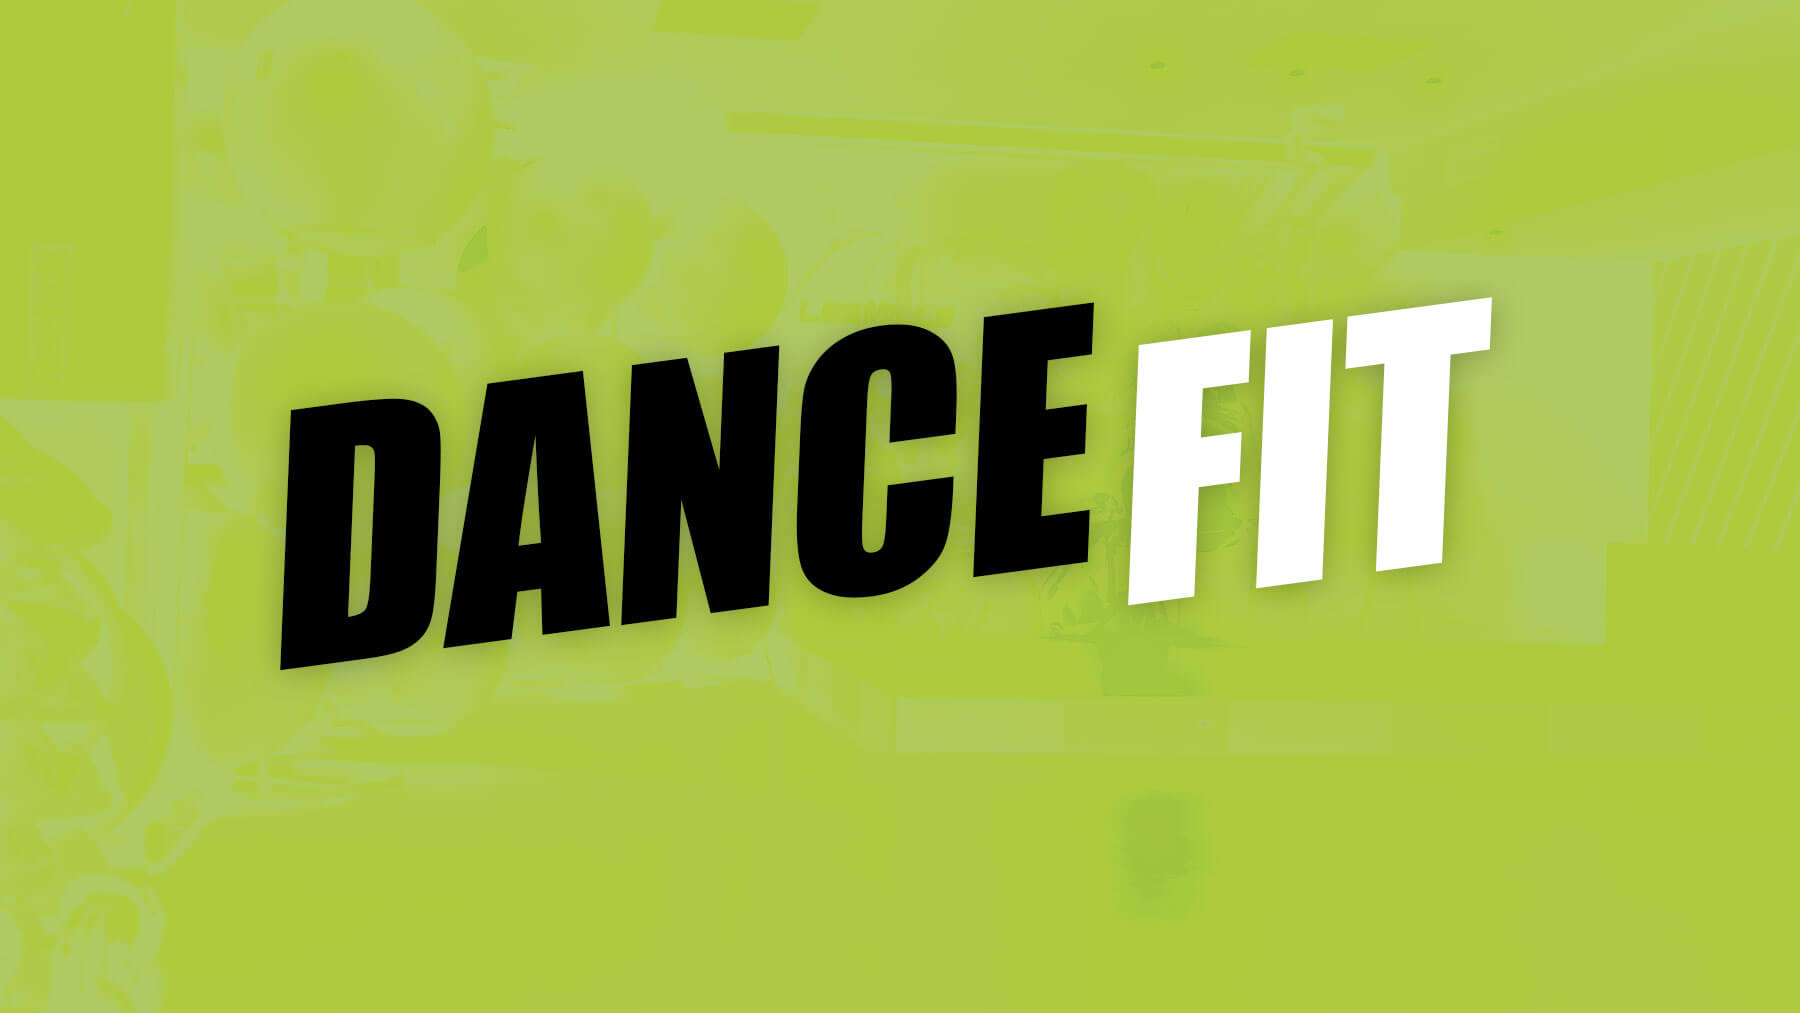 cours-DANCE-FITNESS-champigny-94-gigafit-df